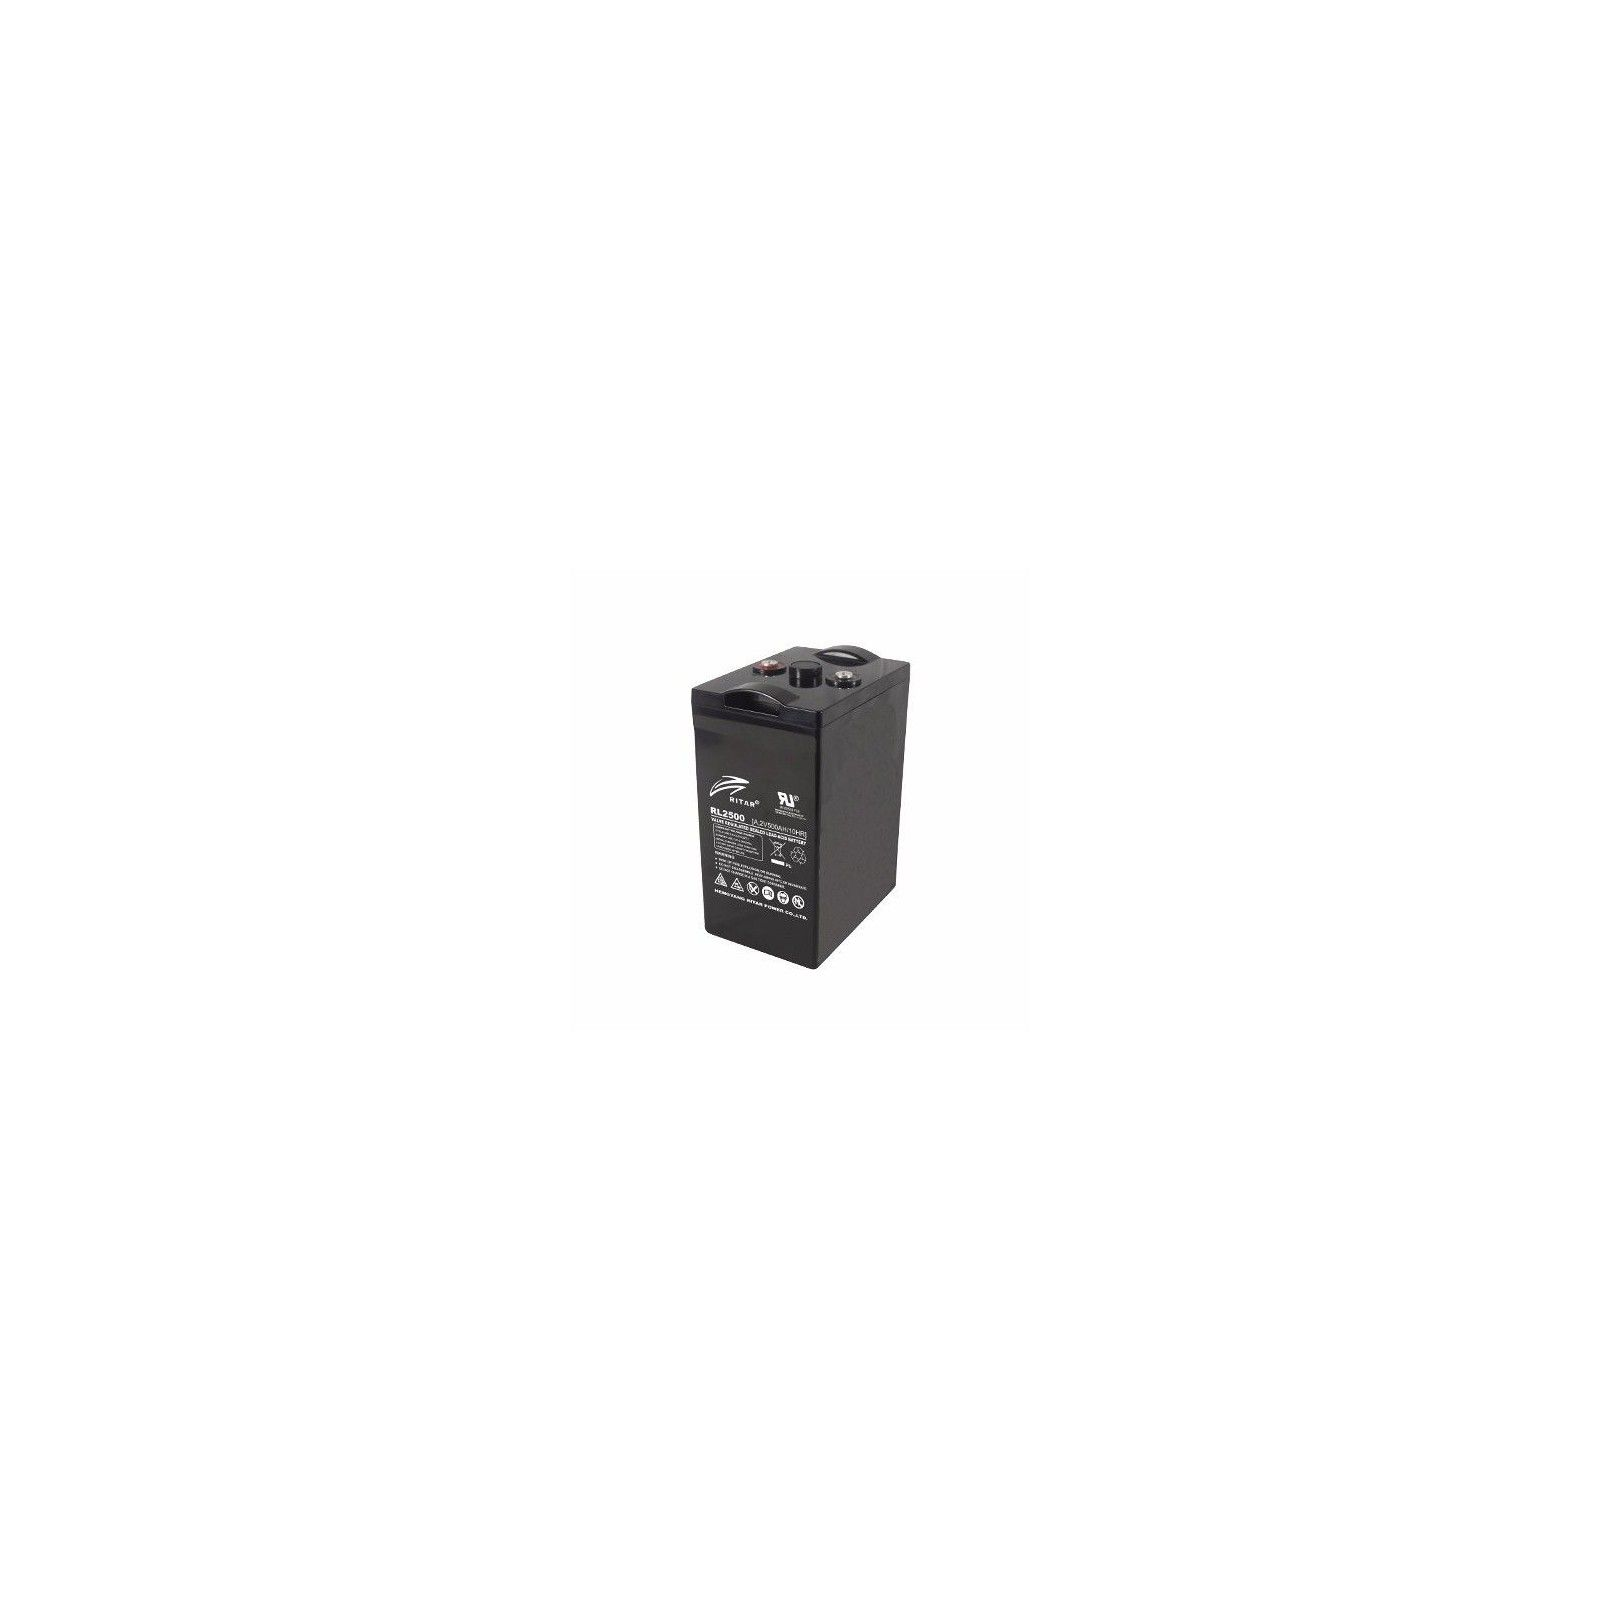 BATTERY MK POWERED AGM ES22-12 12V 22AH  - 1